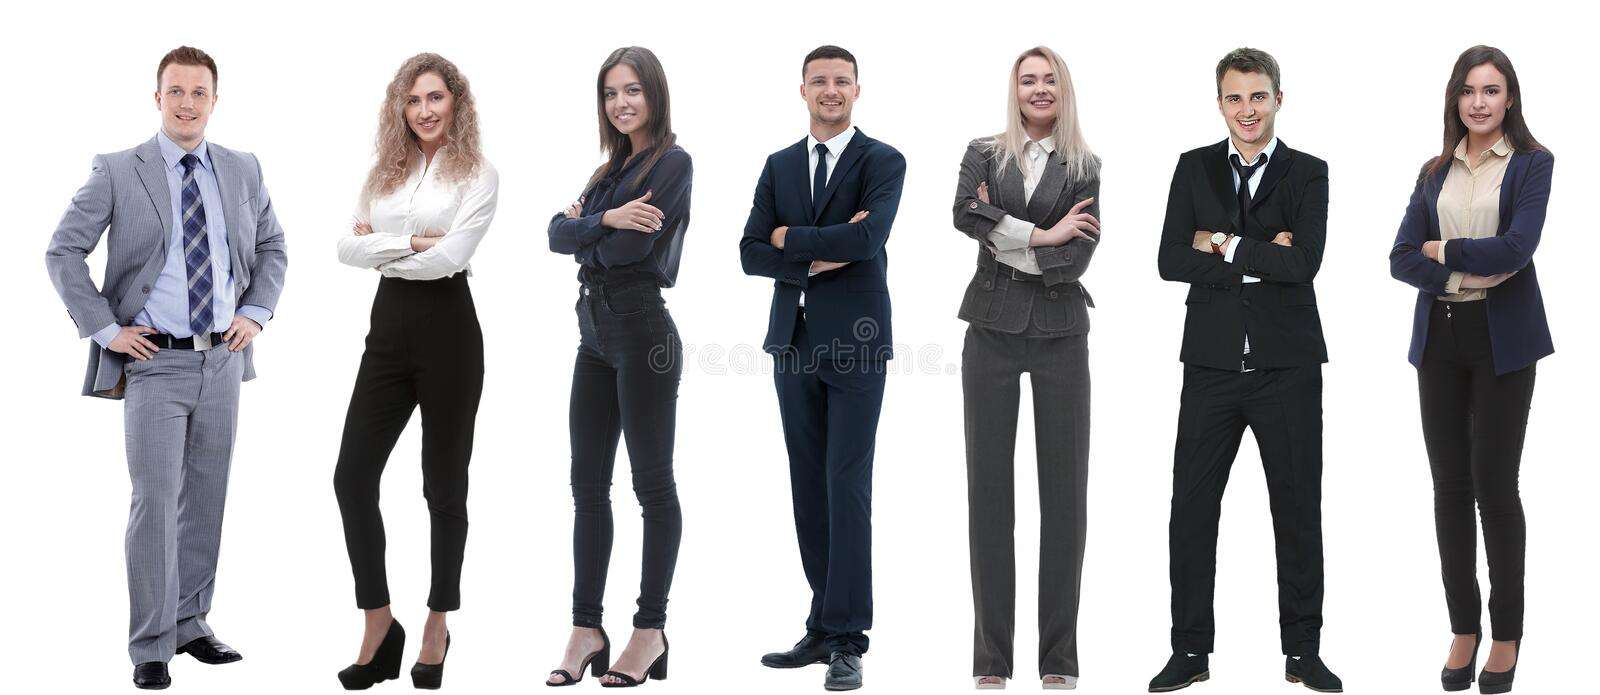 Group of successful business people standing in a row. Isolated on white royalty free stock photography